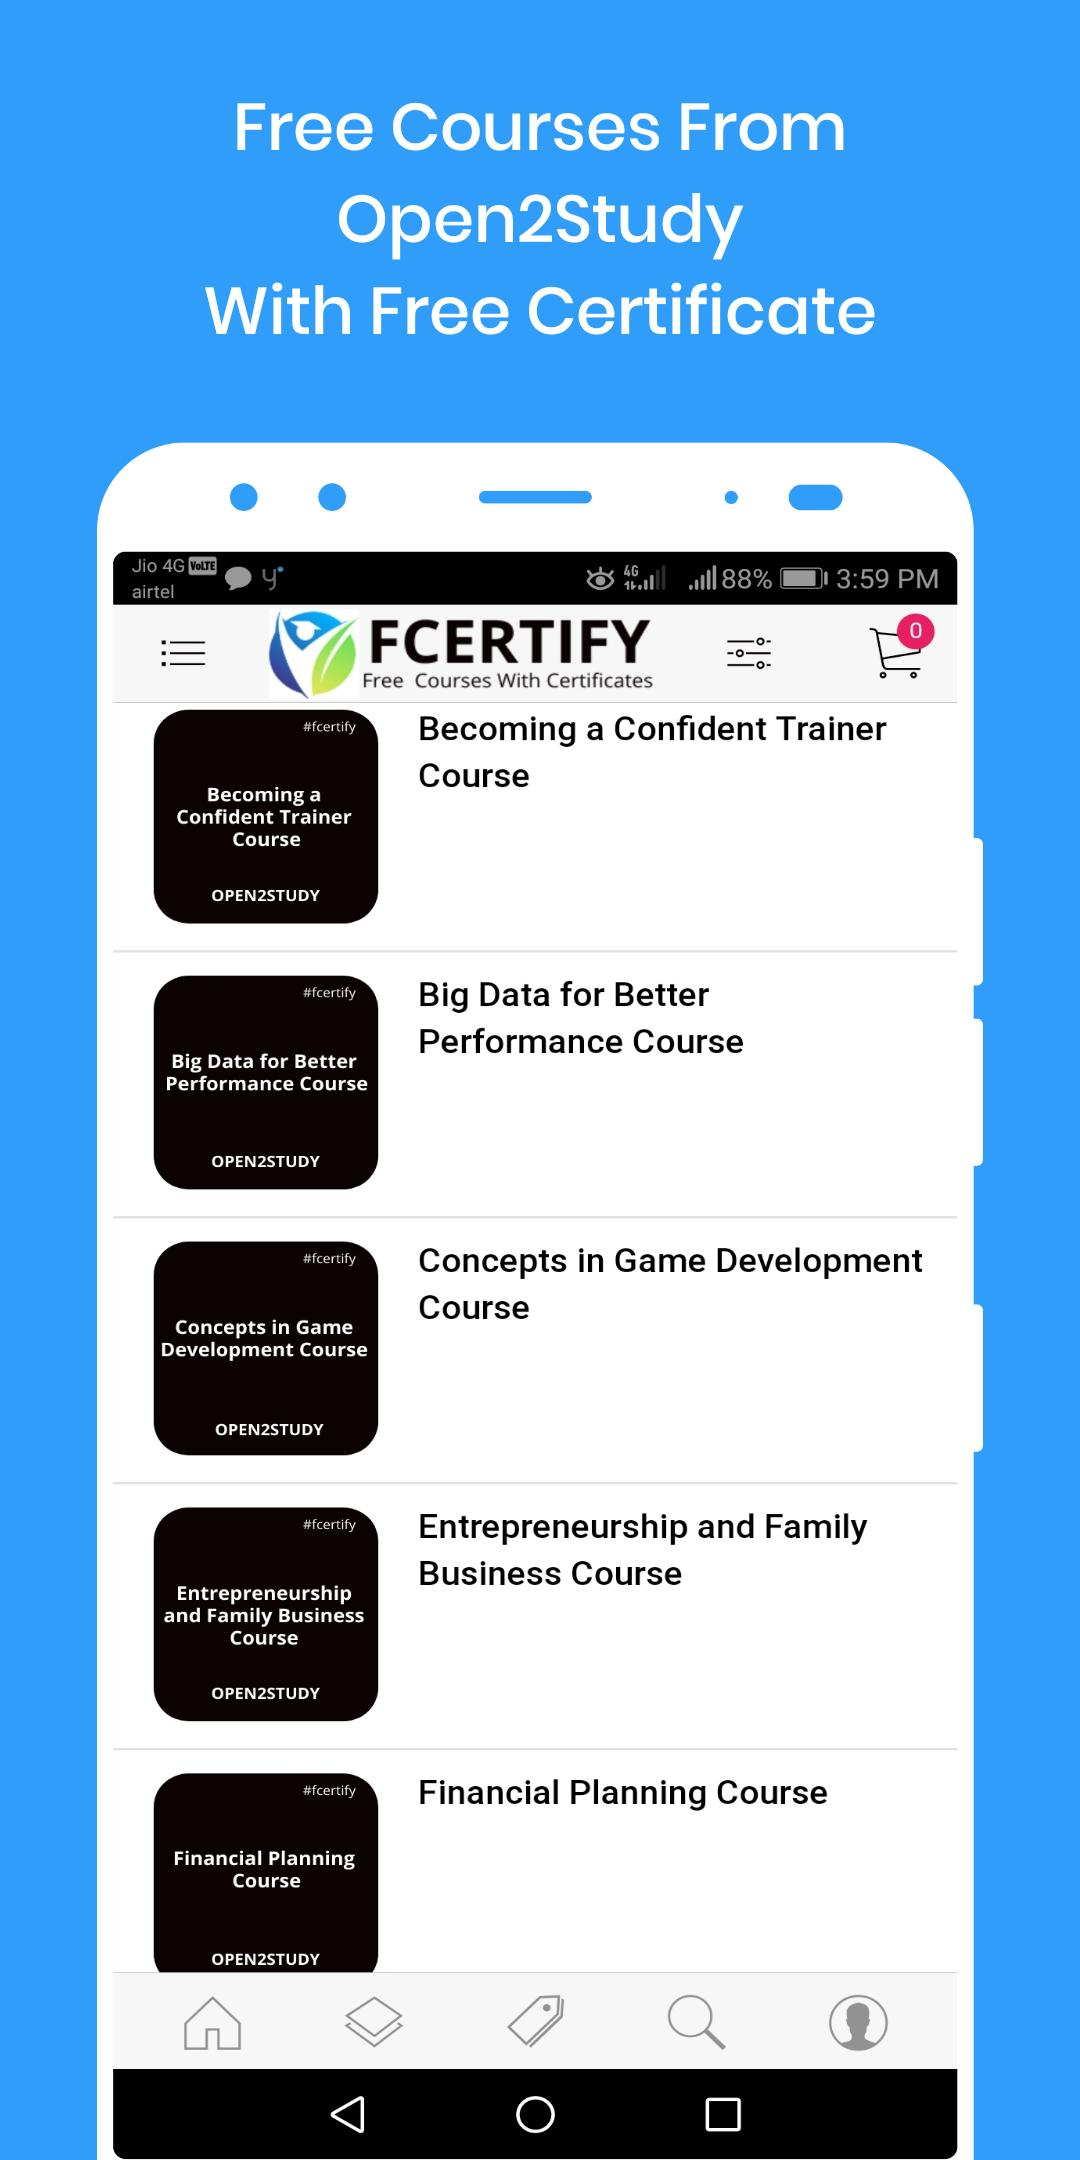 Free Online Courses With Certificate for Android - APK Download